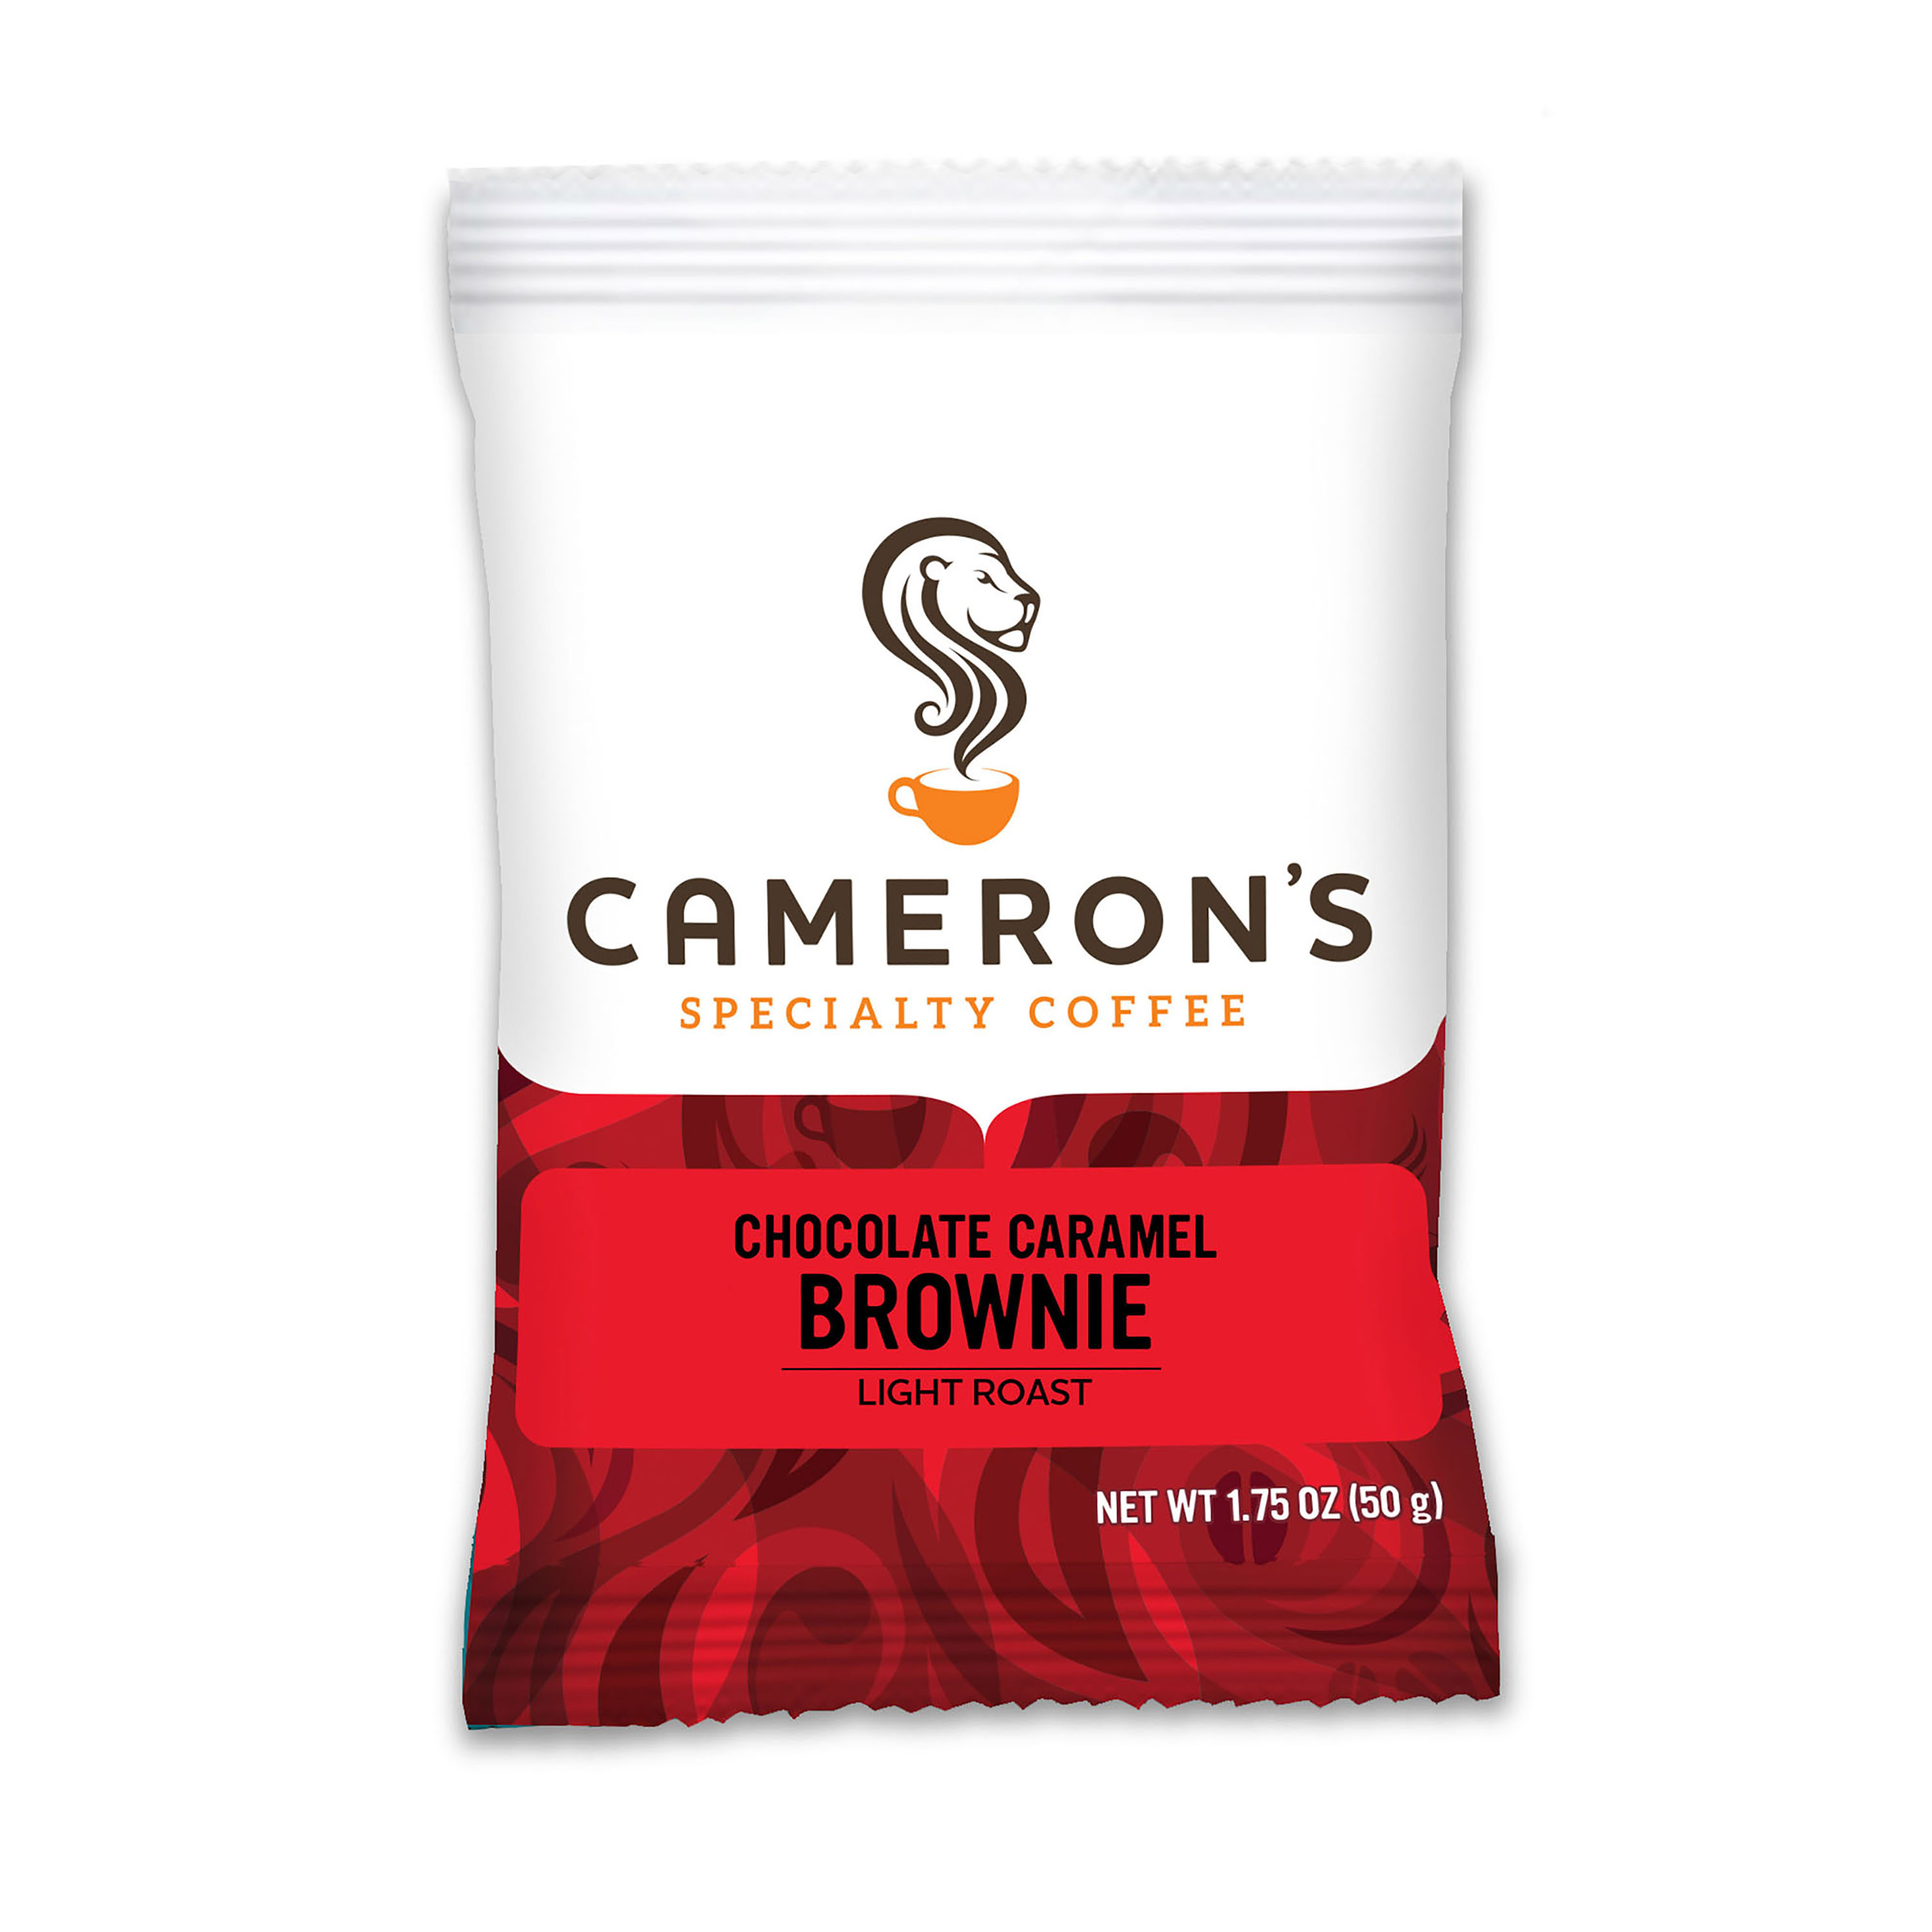 Cameron's Specialty Coffee Chocolate Caramel Brownie Ground, Portioned Packet, 1.75oz